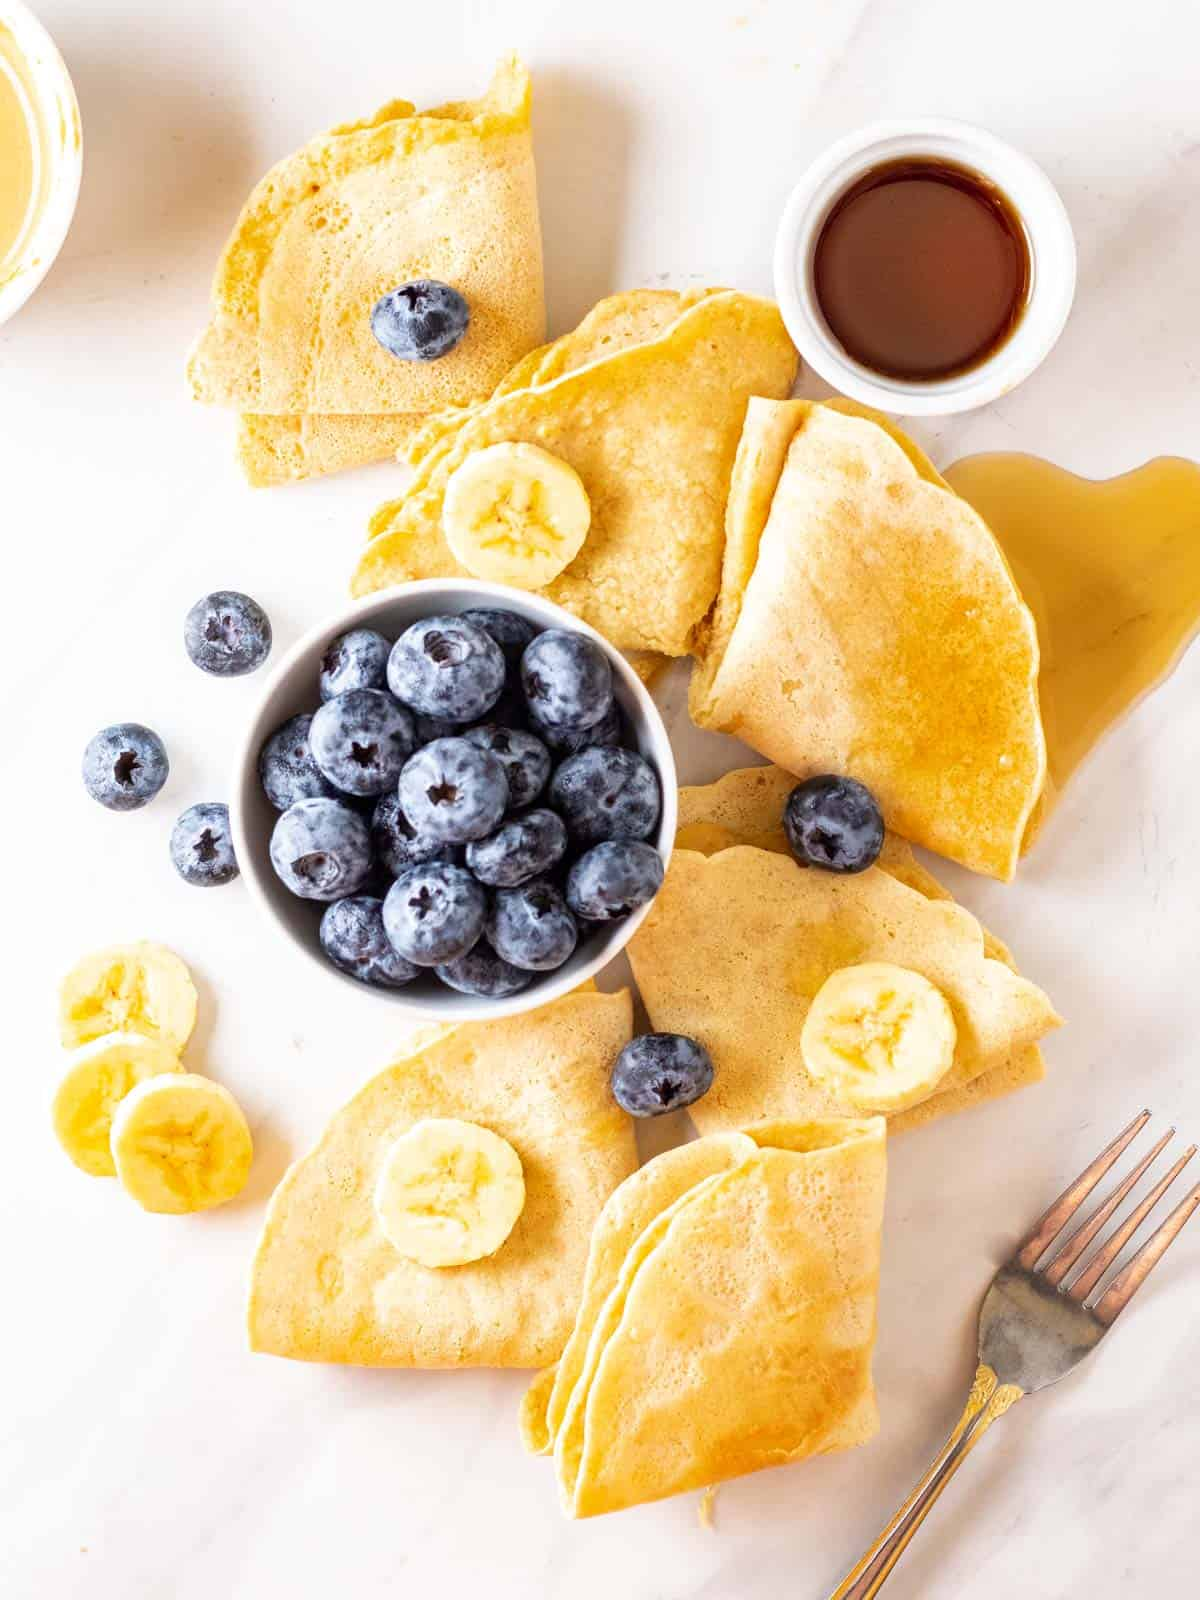 Almond milk crepes arranged on a white background with a bowl of blueberries and maple syrup.